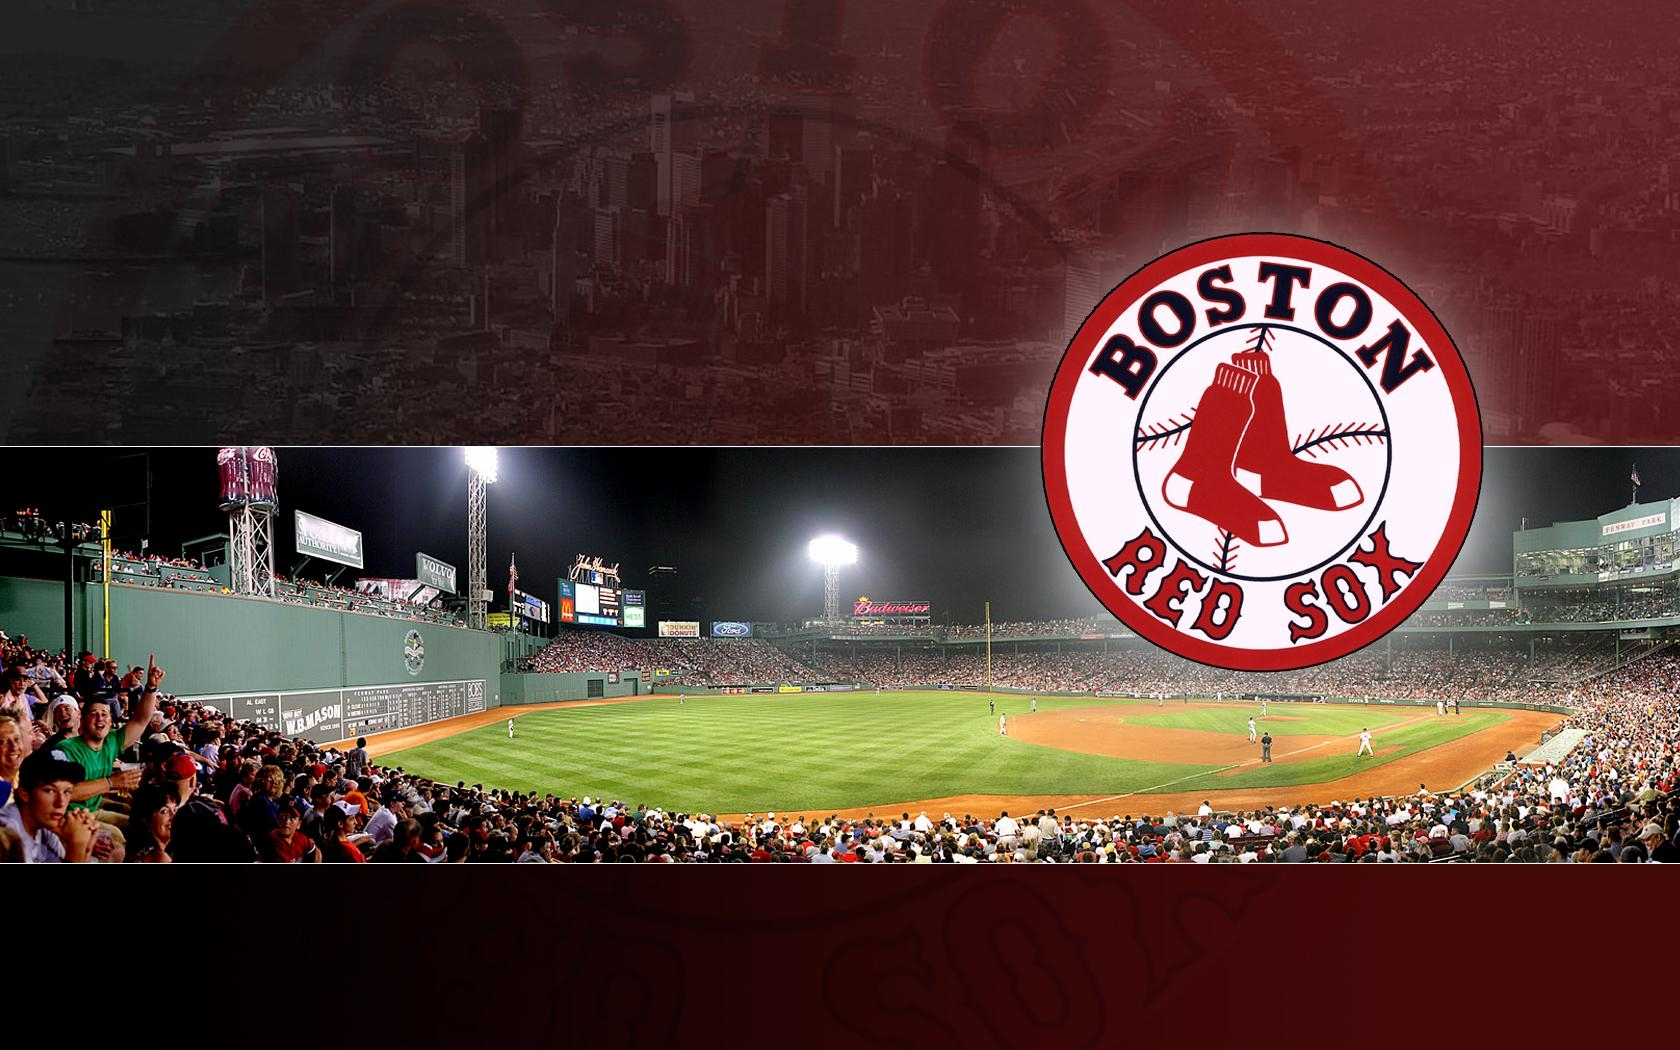 Boston Red Sox Wallpapercrazydi4Mond On Deviantart In Red Sox Wall Art (Image 11 of 20)